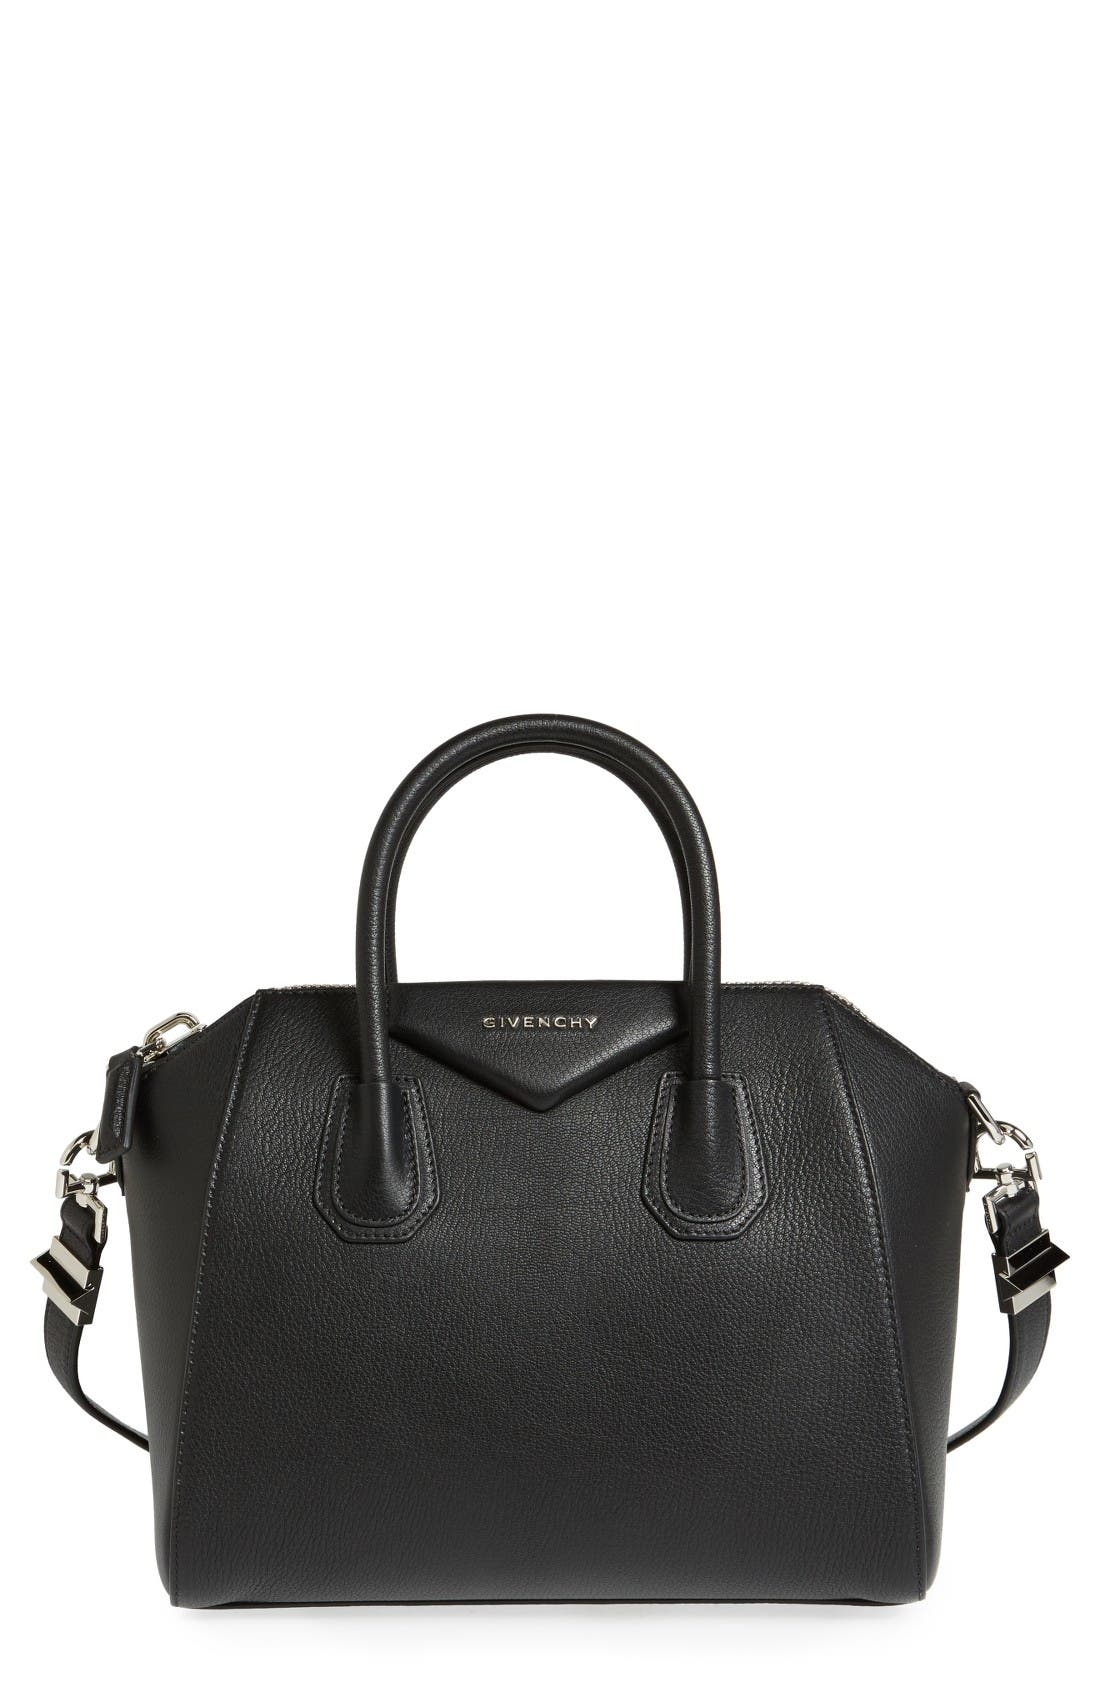 Main Image - Givenchy 'Small Antigona' Leather Satchel